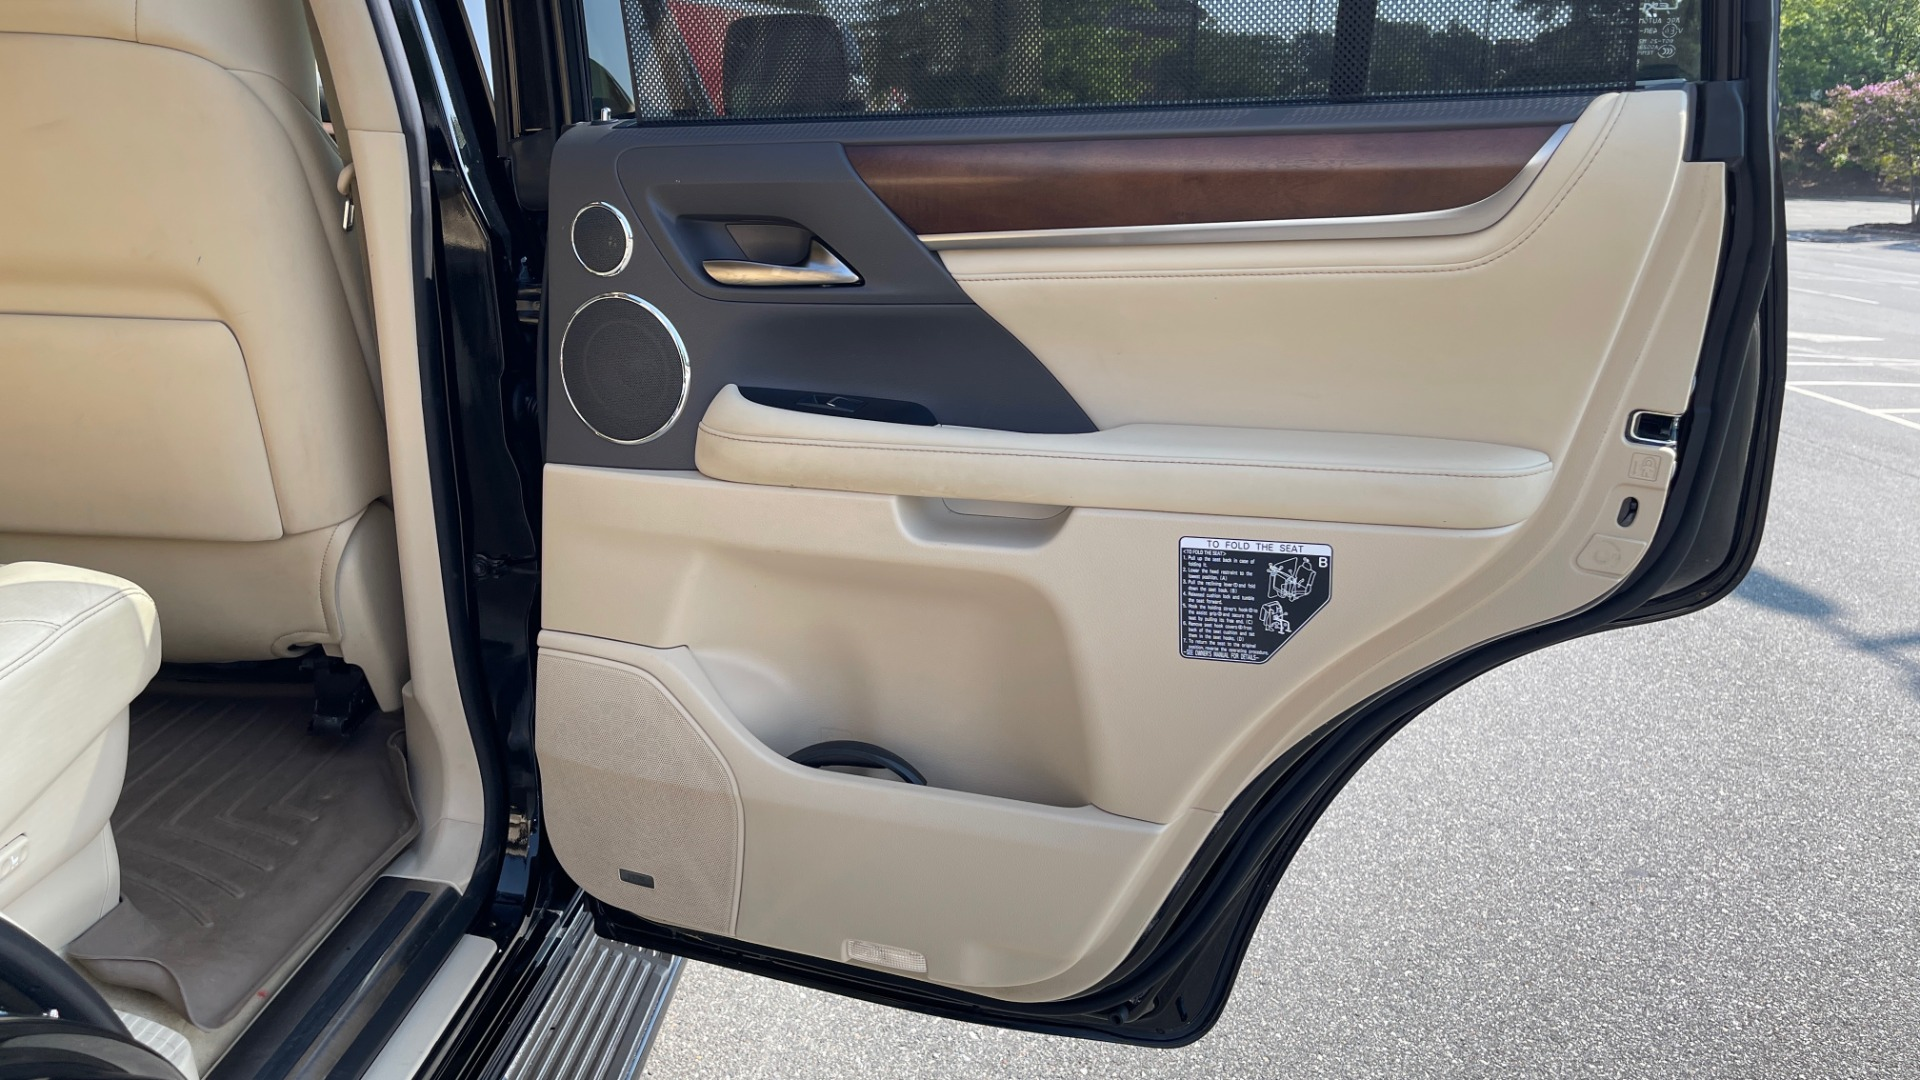 Used 2017 Lexus LX 570 LUXURY / 5.7L V8 / NAV / SUNROOF / 3-ROW / DVD / REARVIEW for sale $63,995 at Formula Imports in Charlotte NC 28227 64